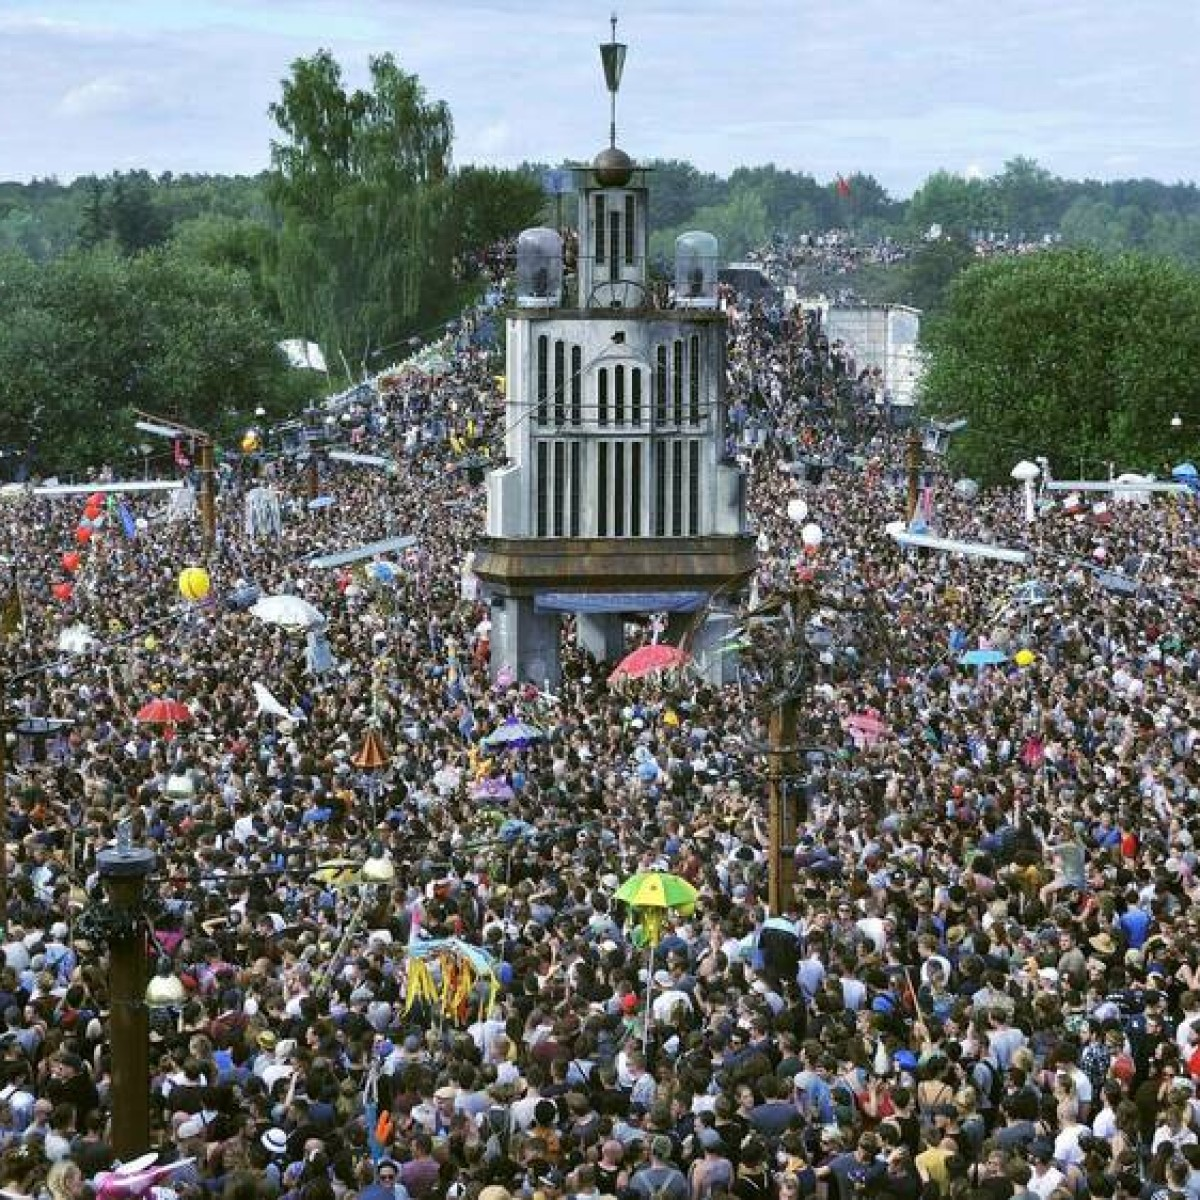 Nackt see fusion festival Salmonfest 2021: